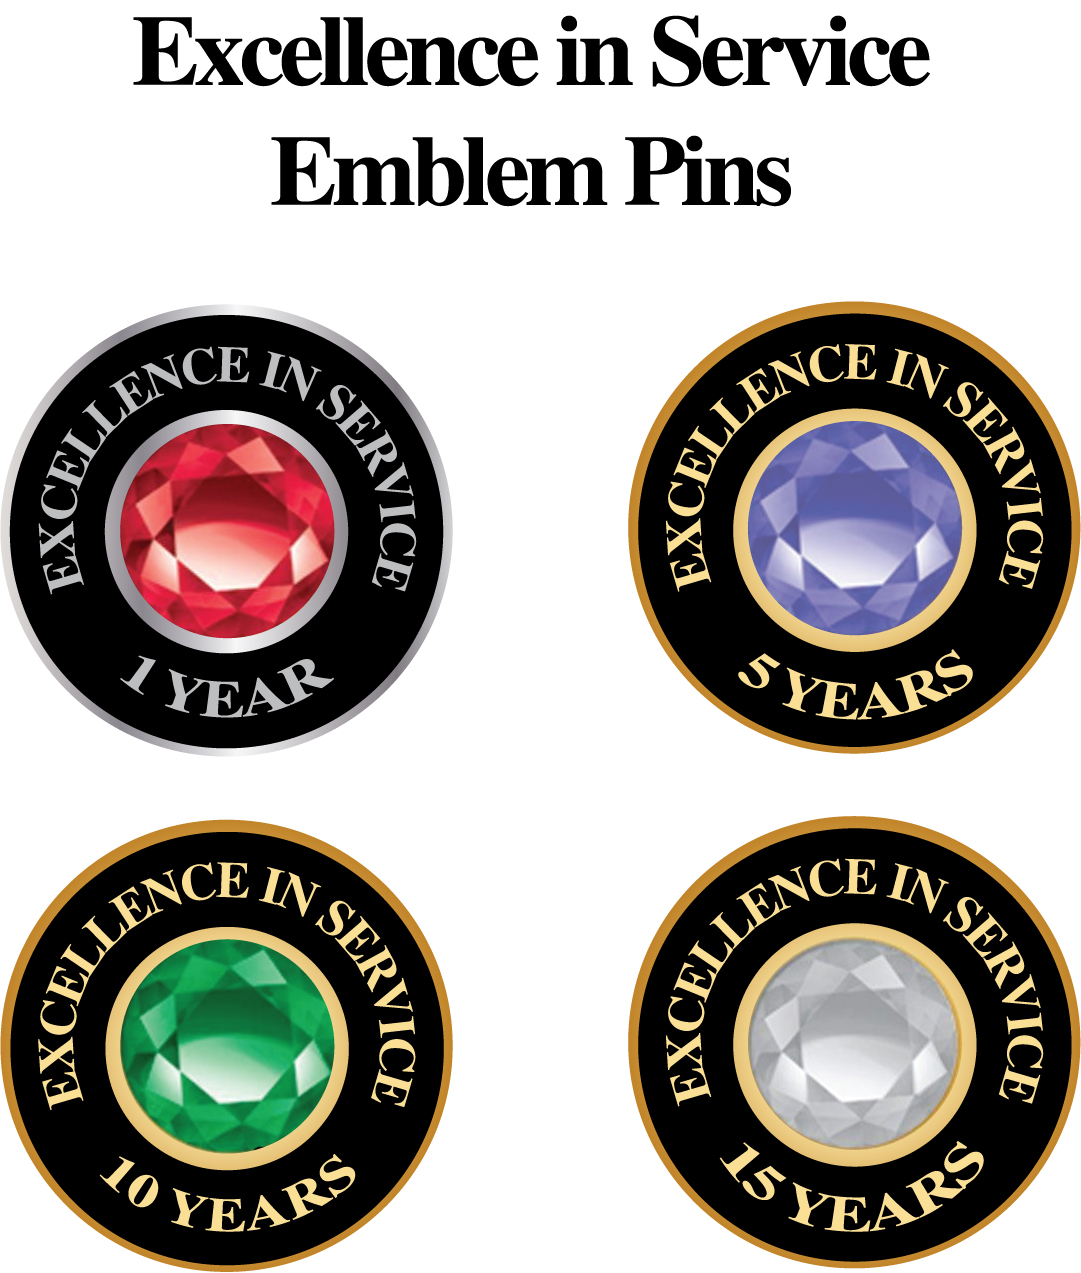 Years of Excellence Emblem Pin - RTS4431